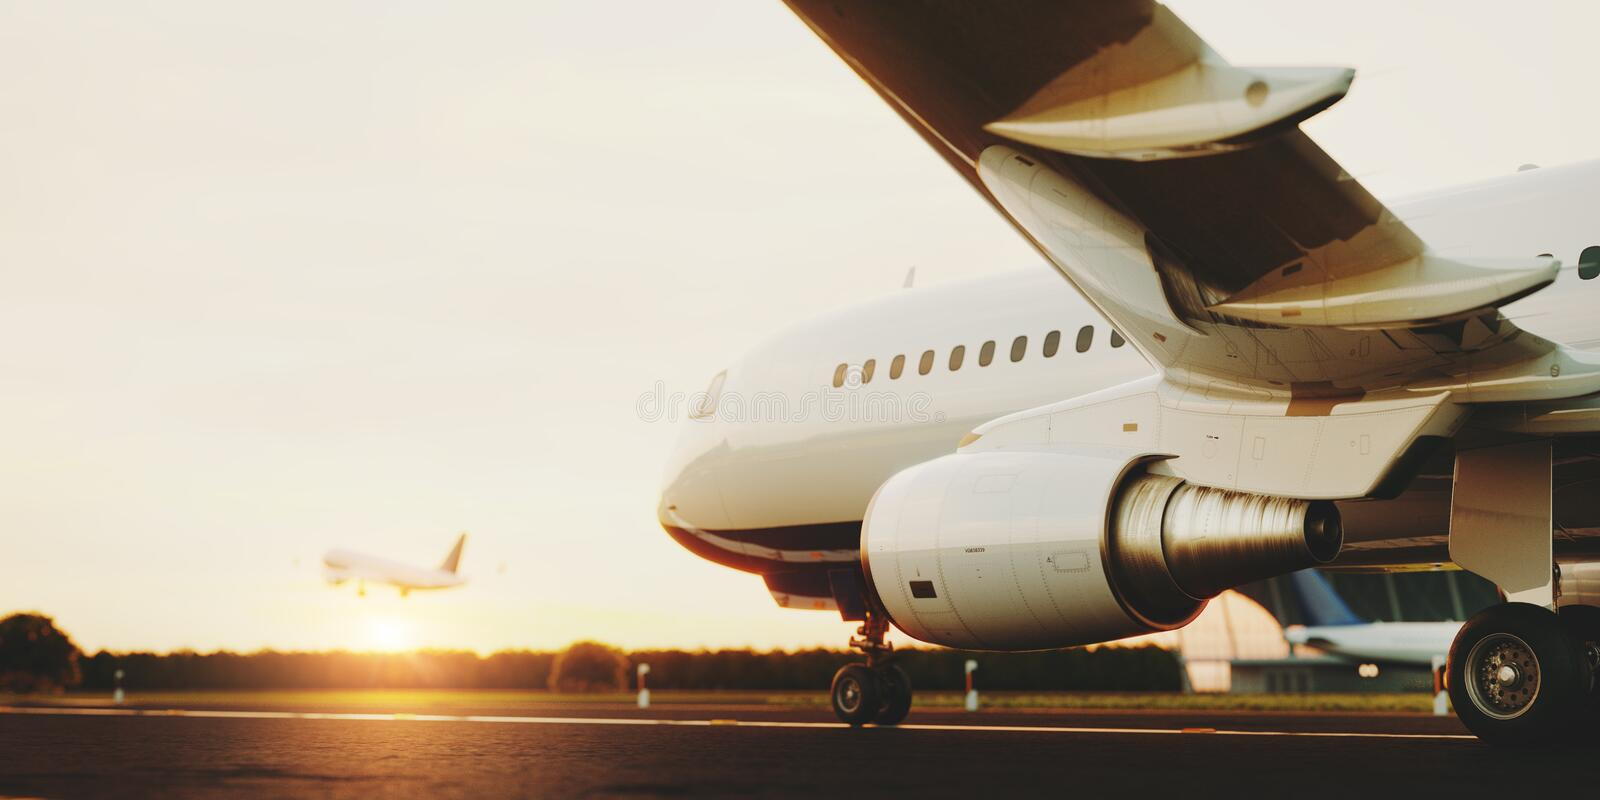 White commercial airplane standing on the airport runway at sunset. Passenger airplane is taking off. stock image